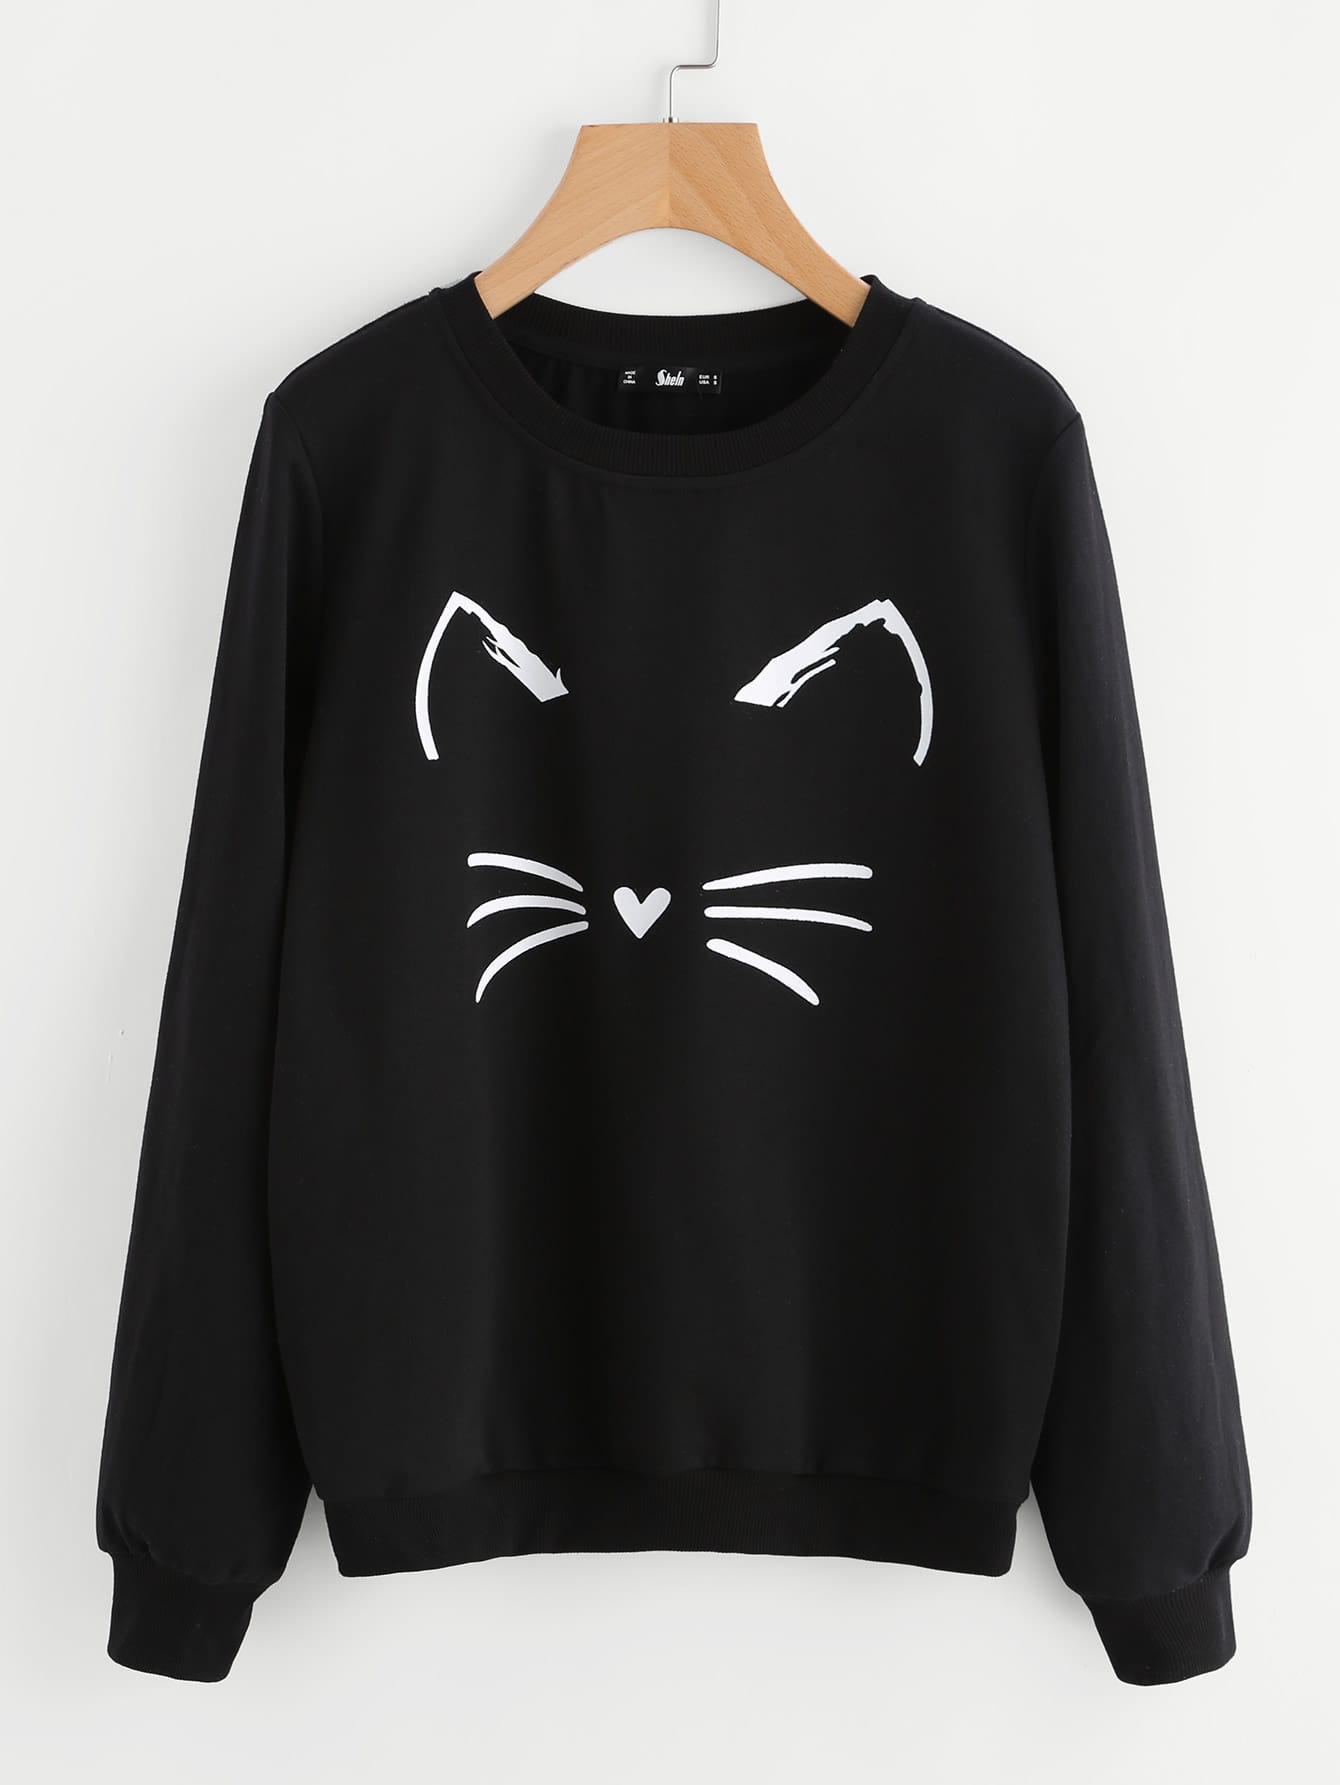 Cool workdays begin with CAT sweatshirts for men. Available in various weights, fabrics, colors, and styles, this CAT gear is built for early mornings, late nights, cool fall downiloadojg.gqd: Jan 01,